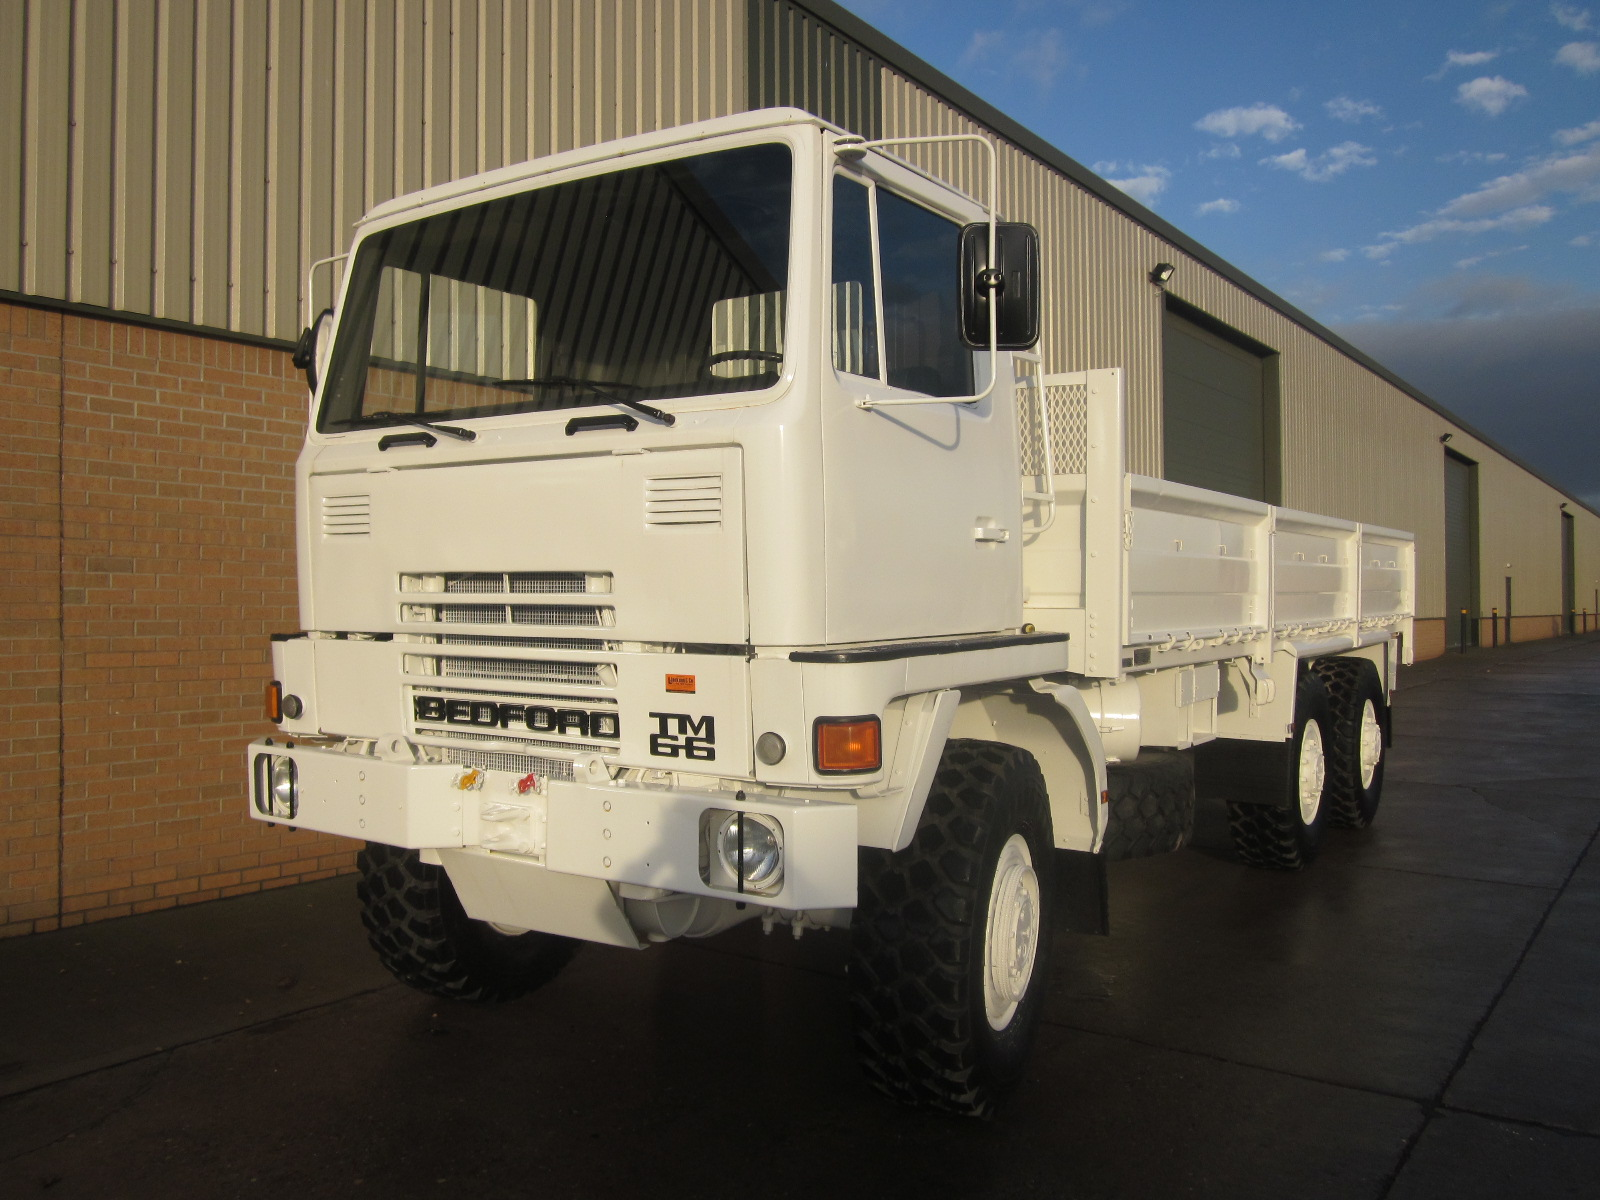 Bedford TM 6x6 Drop Side Cargo Truck  LHD |  EX.MOD direct sales